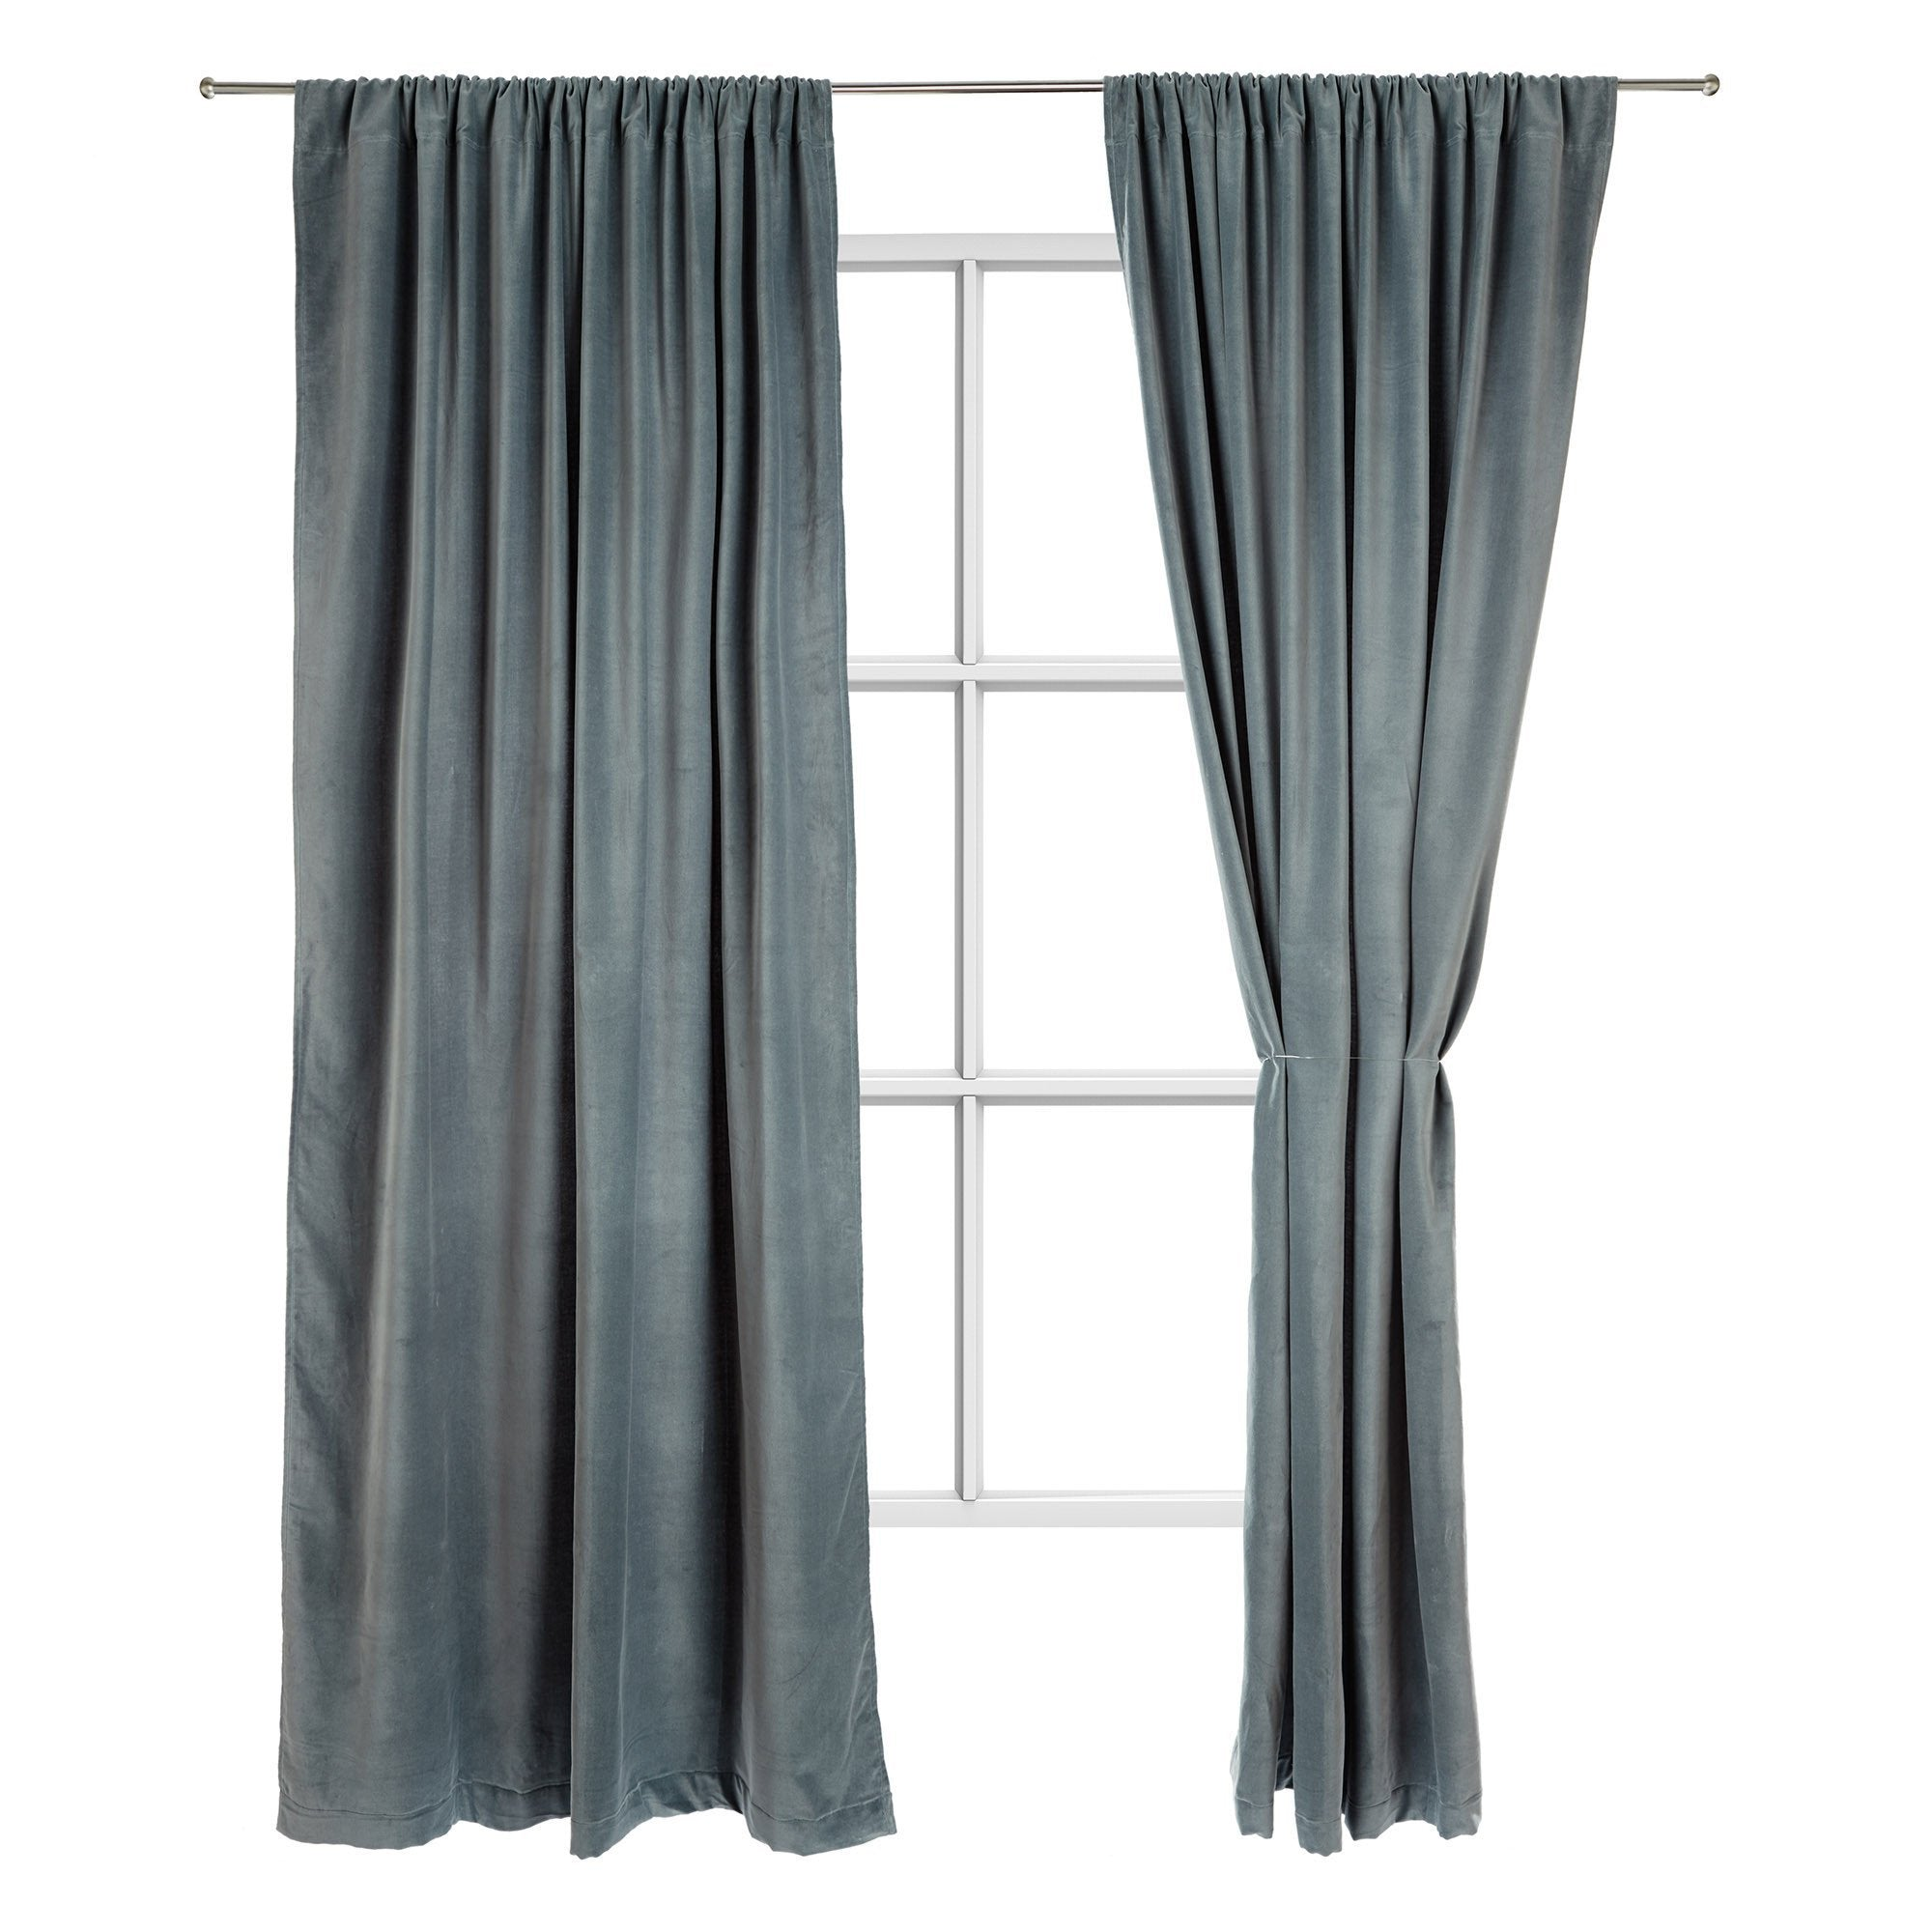 Samana curtain, green grey, 100% cotton